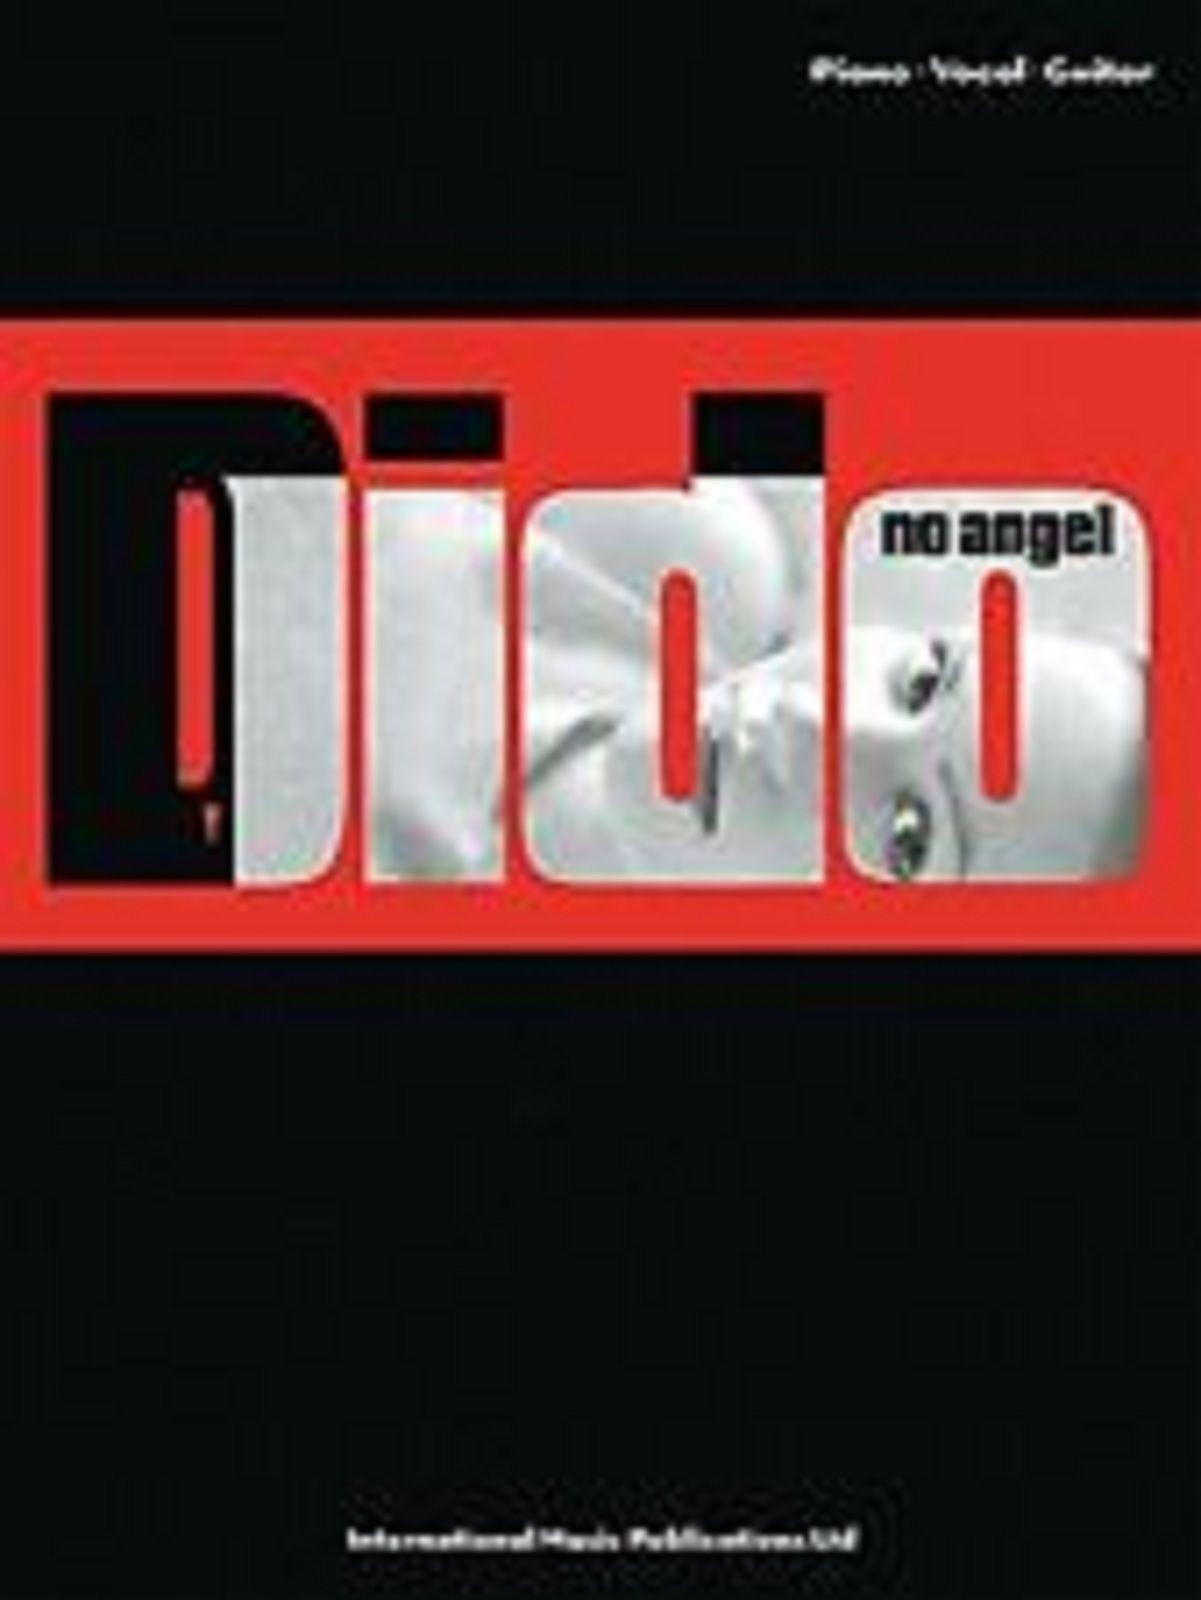 Dido No Angel Piano Vocal Guitar Songbook Sheet Music Book Songwriter S159